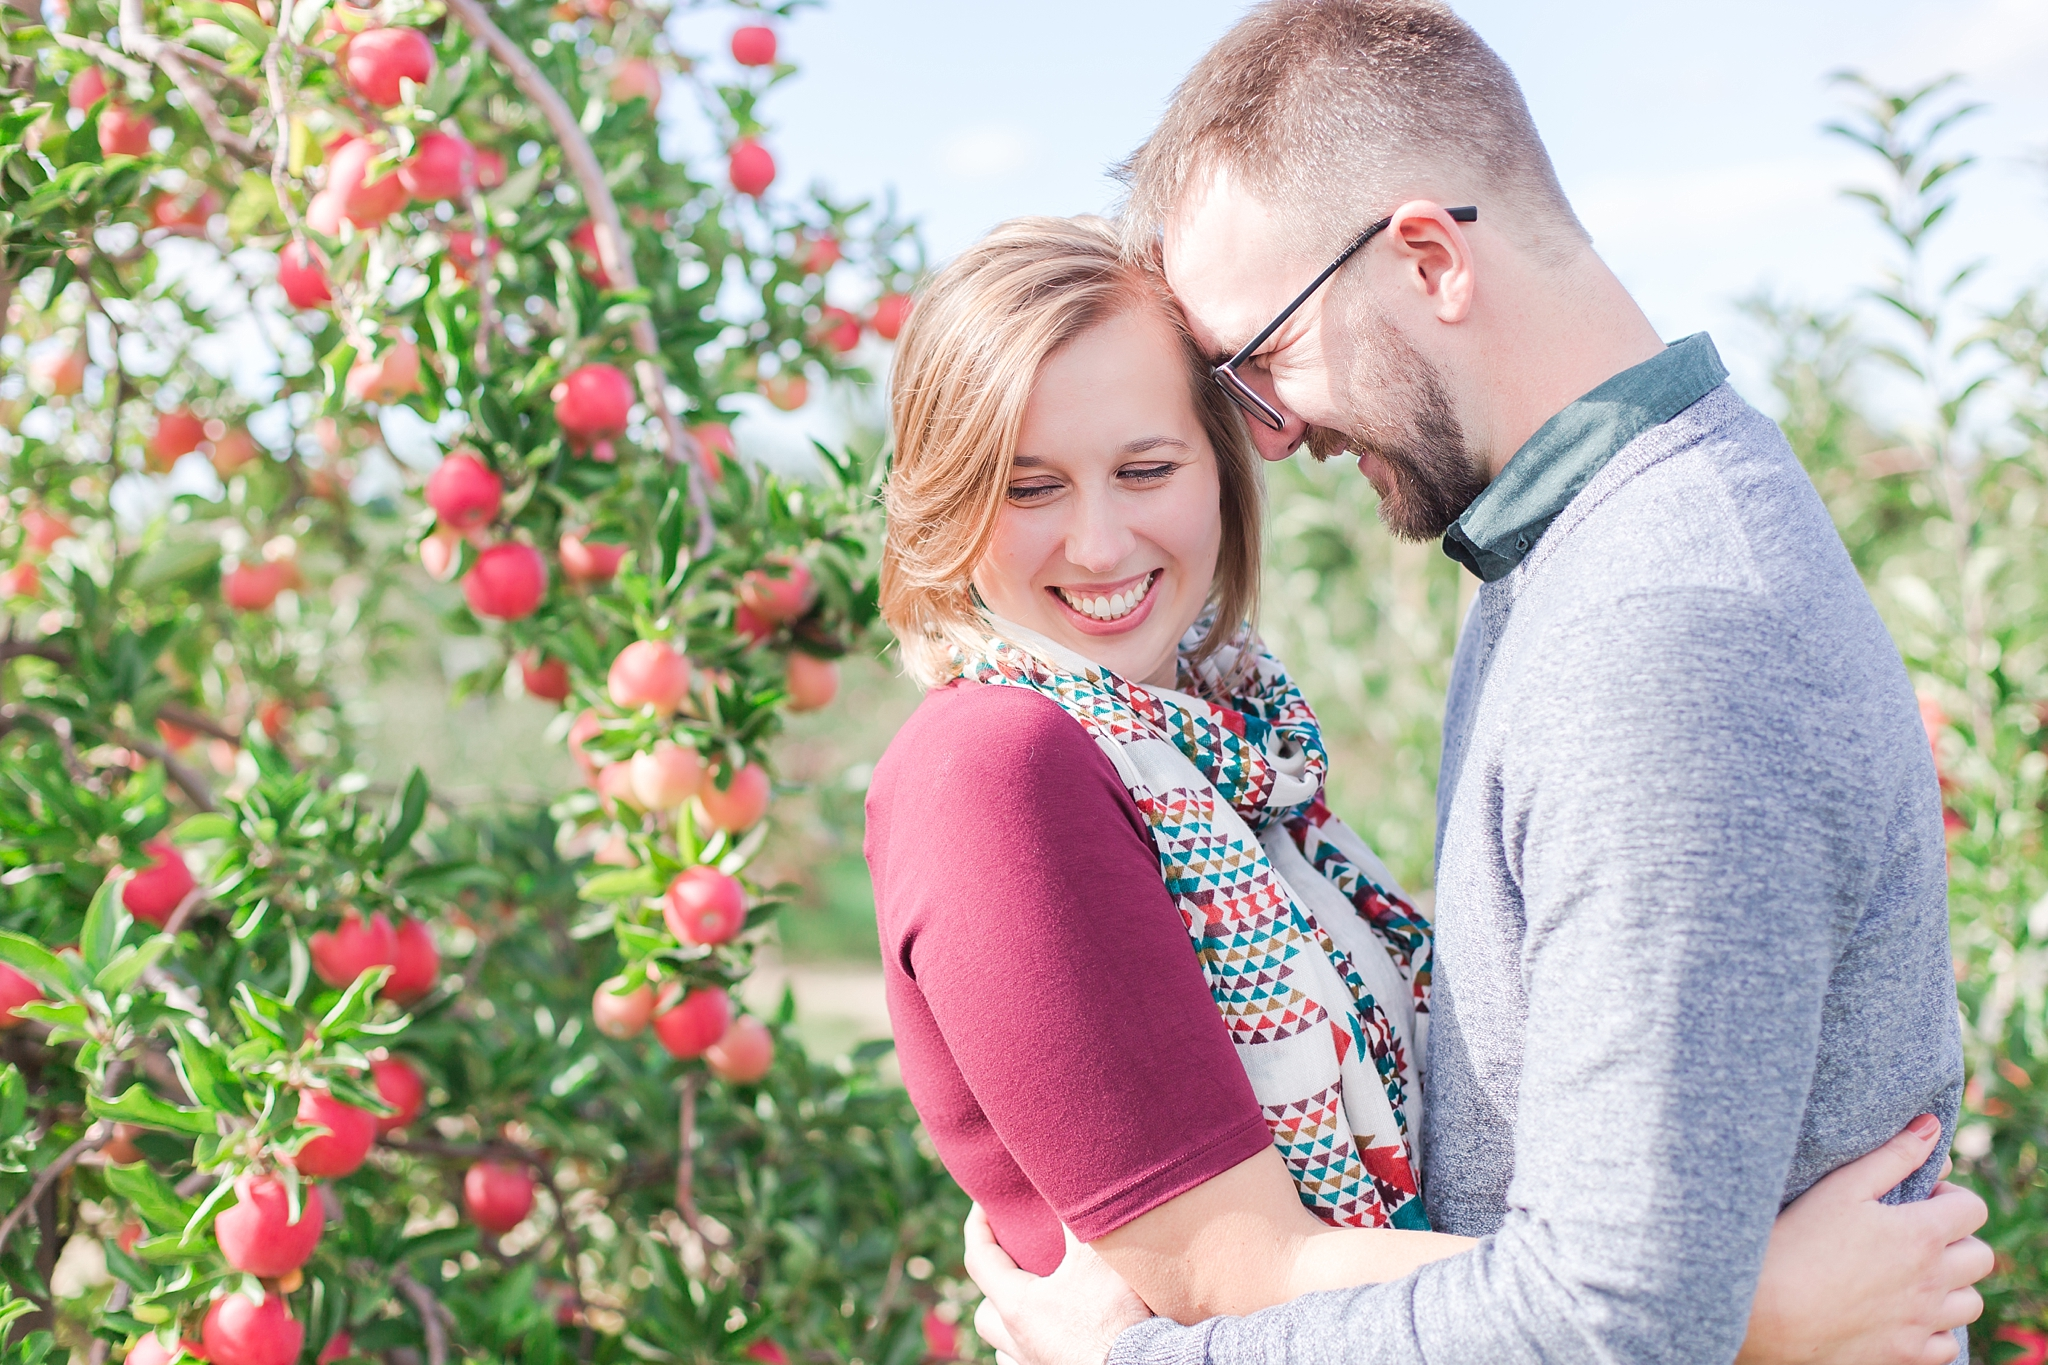 playful-fall-engagement-photos-at-hy's-cider-mill-ochard-in-bruce-township-michigan-by-courtney-carolyn-photography_0014.jpg